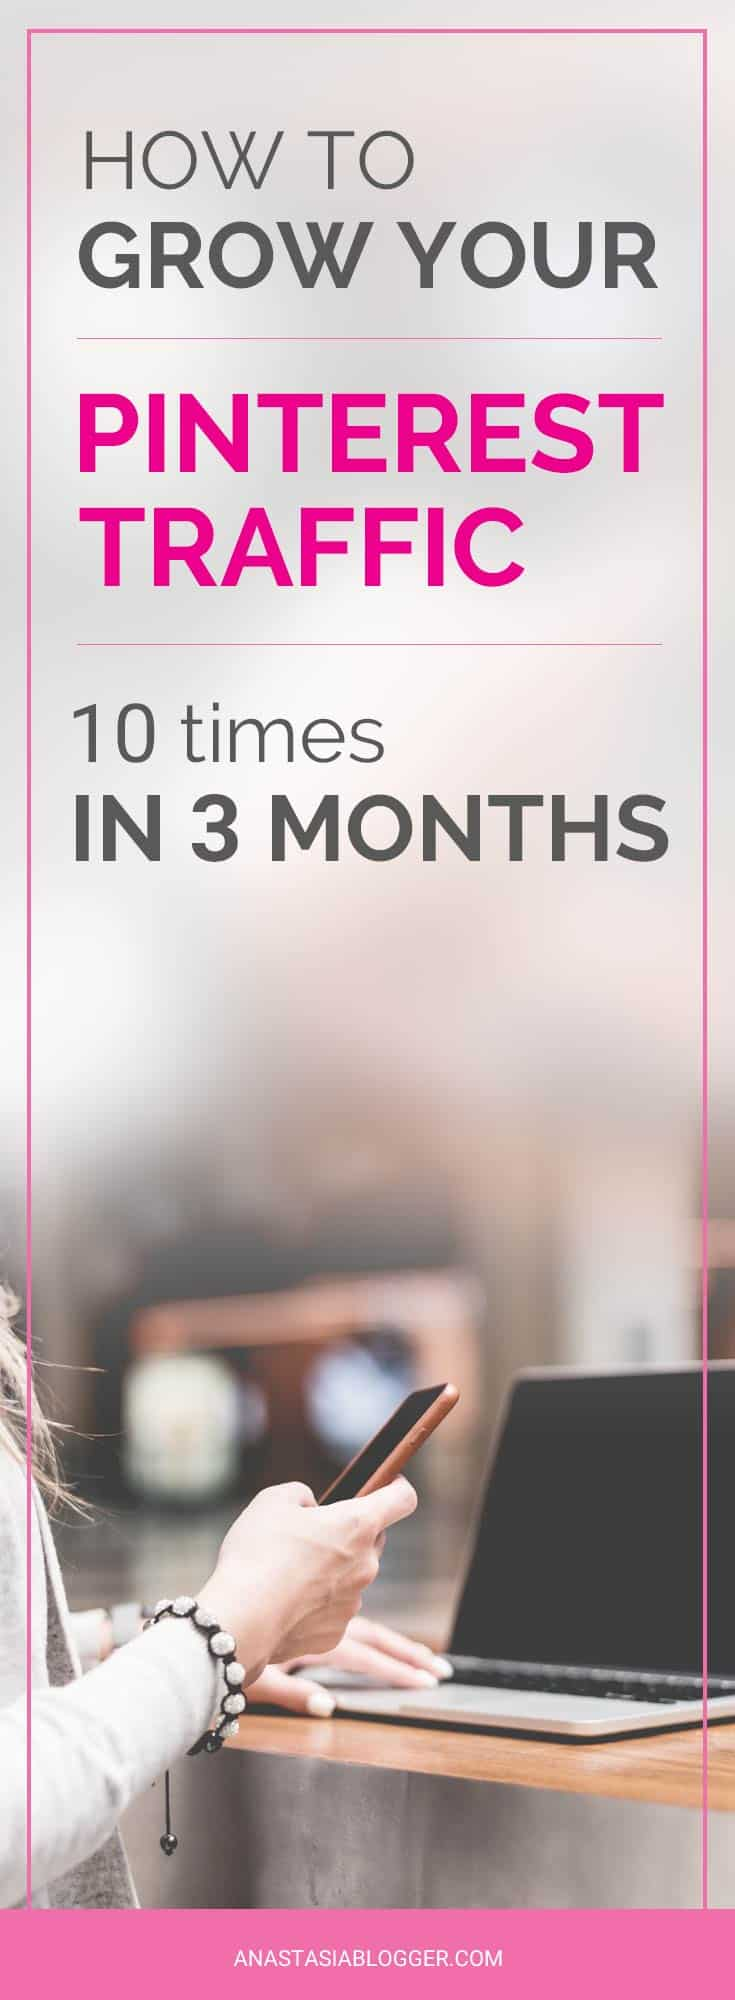 How her Pinterest Traffic has Grown 10 times in just 3 months? Pinterest Tips and Tricks – how to use Pinterest to grow your blog traffic 10 times? Pinterest Tips for Bloggers and Pinterest tips for business!